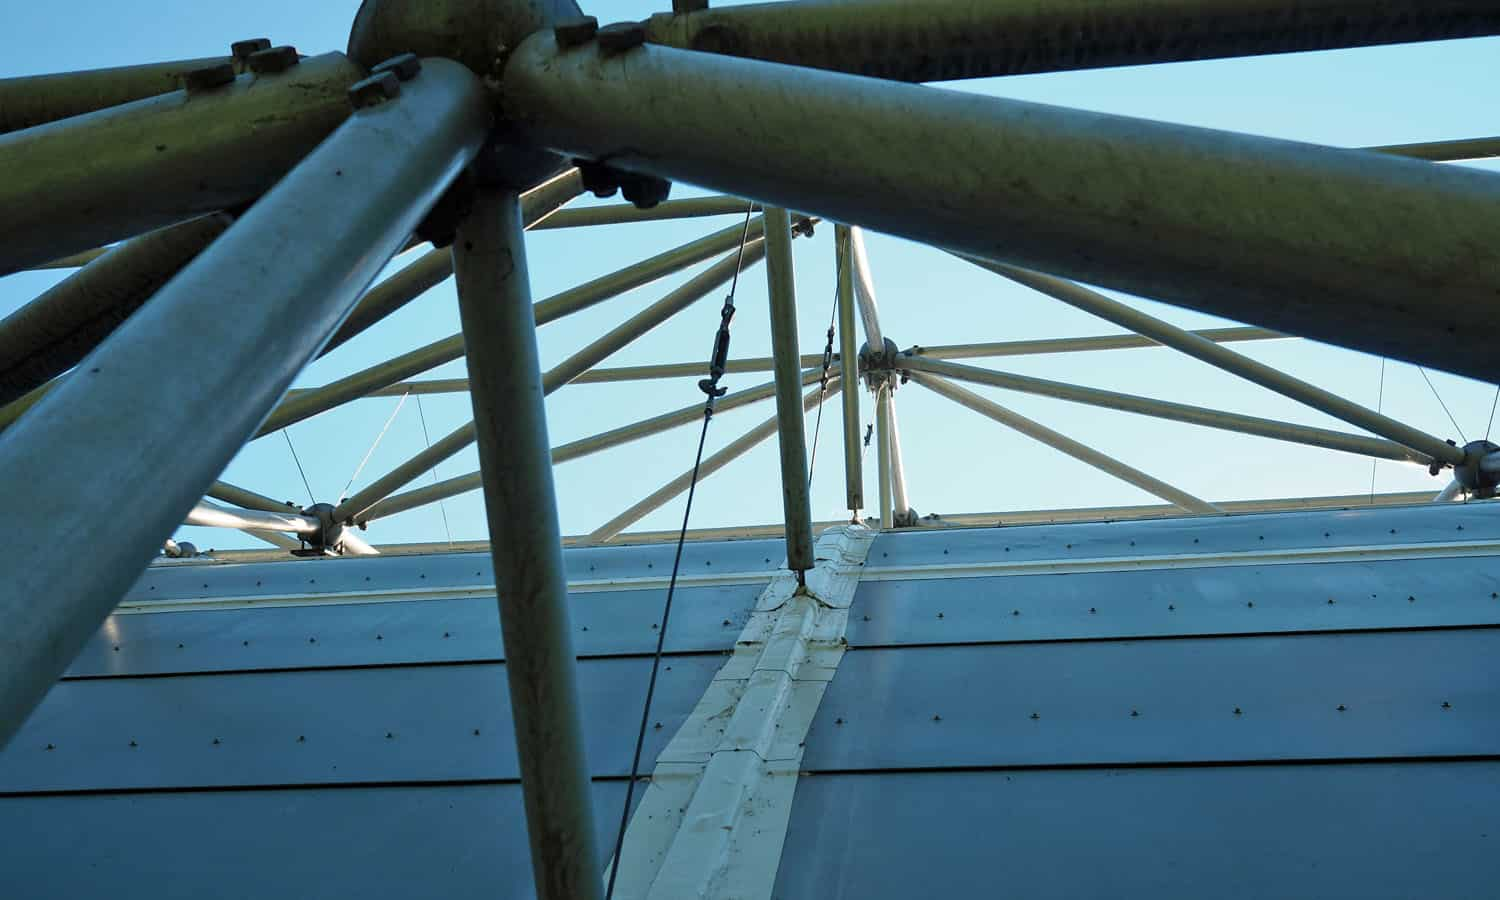 Detail of the structure and new seals at the metal panel intersections